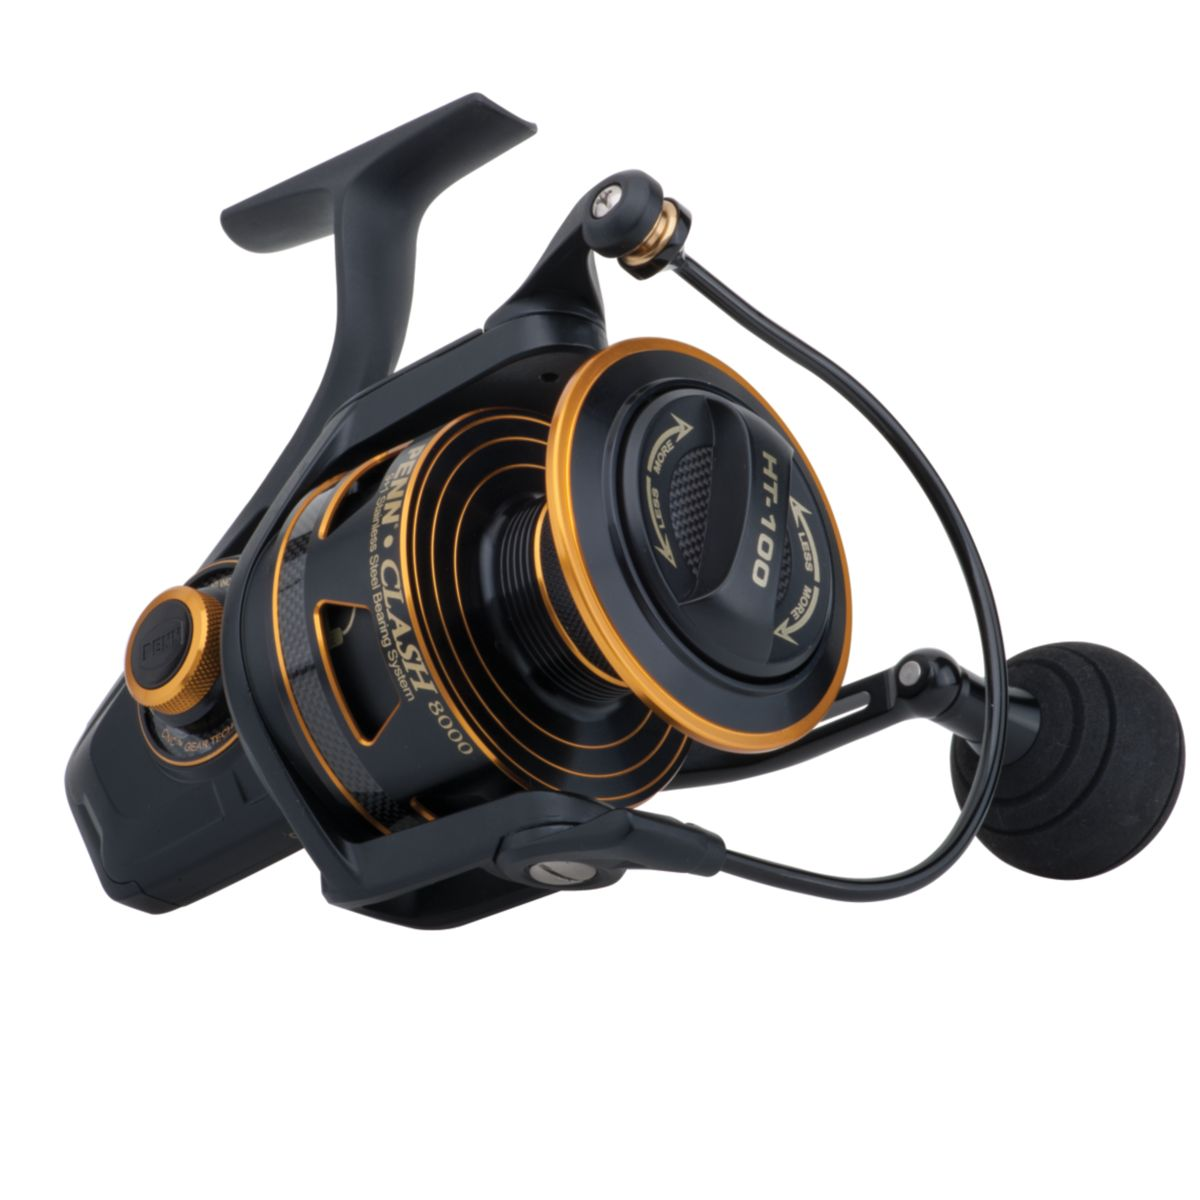 Penn Clash CLA5000 Spinning Reel